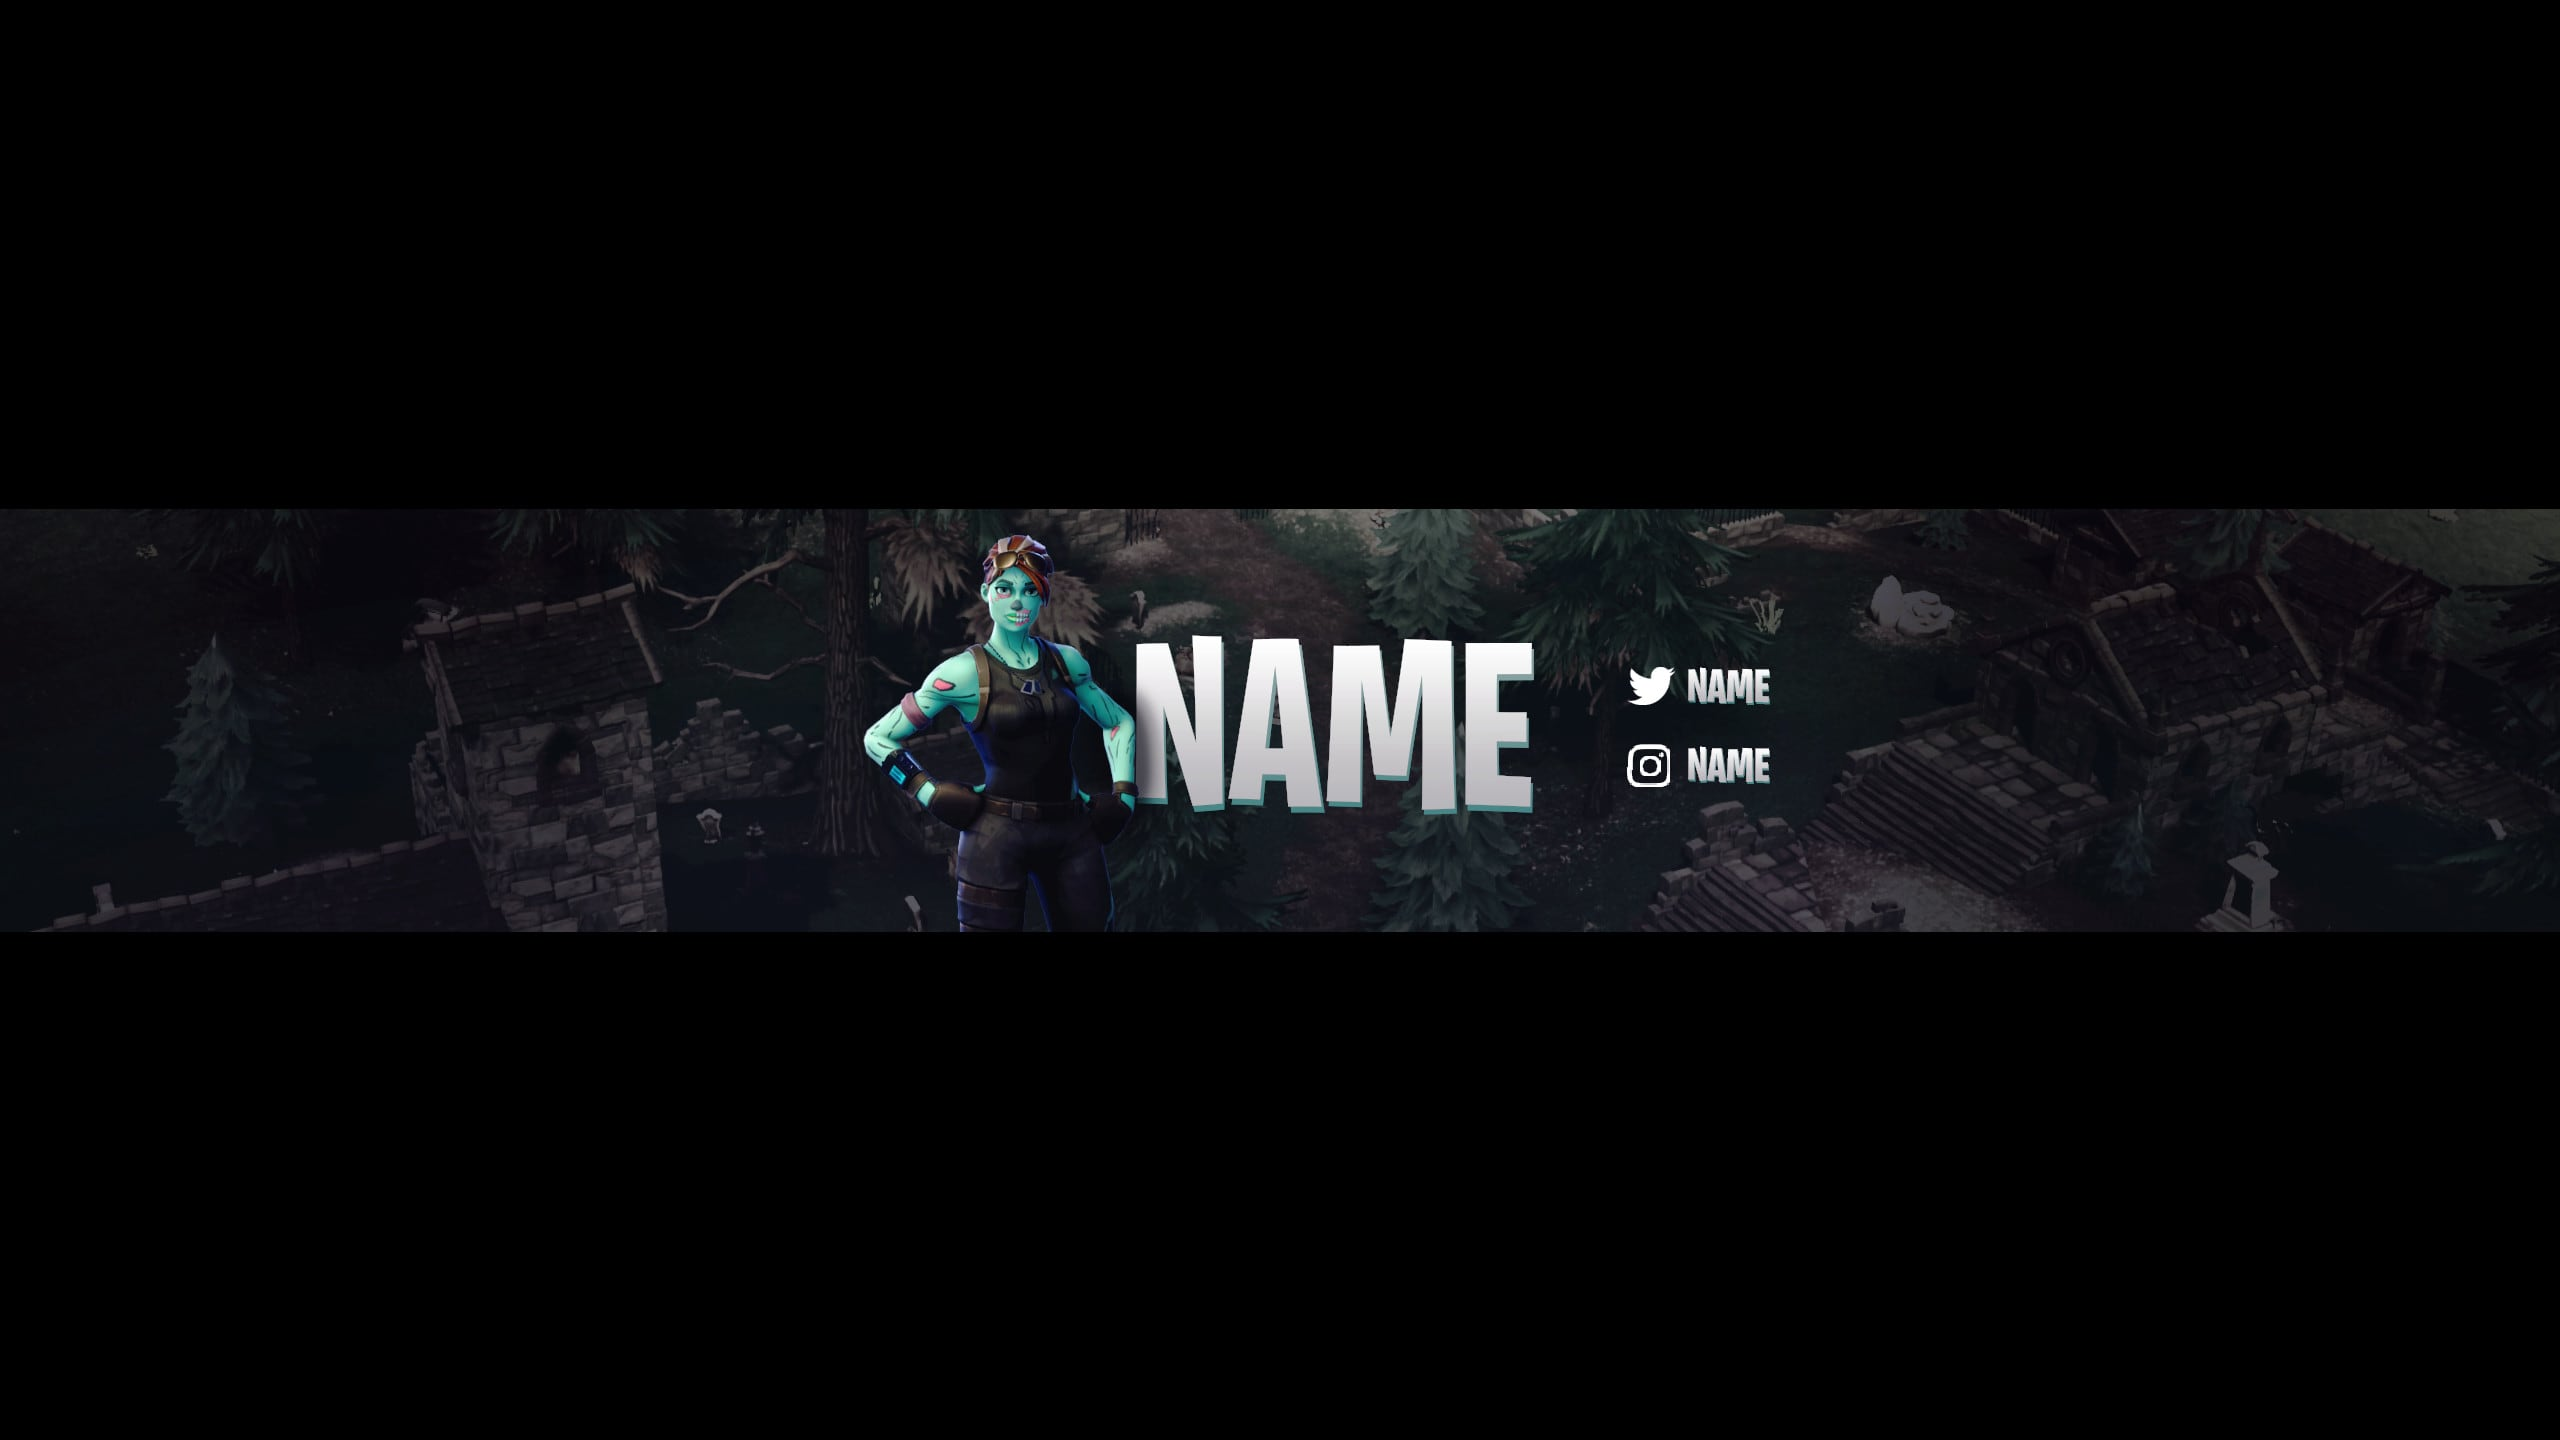 Design You A Fortnite Banner By Sagaciousless Nobody knew fortnite at the time, majority knew fortnite from e3 2017 and br's success. design you a fortnite banner by